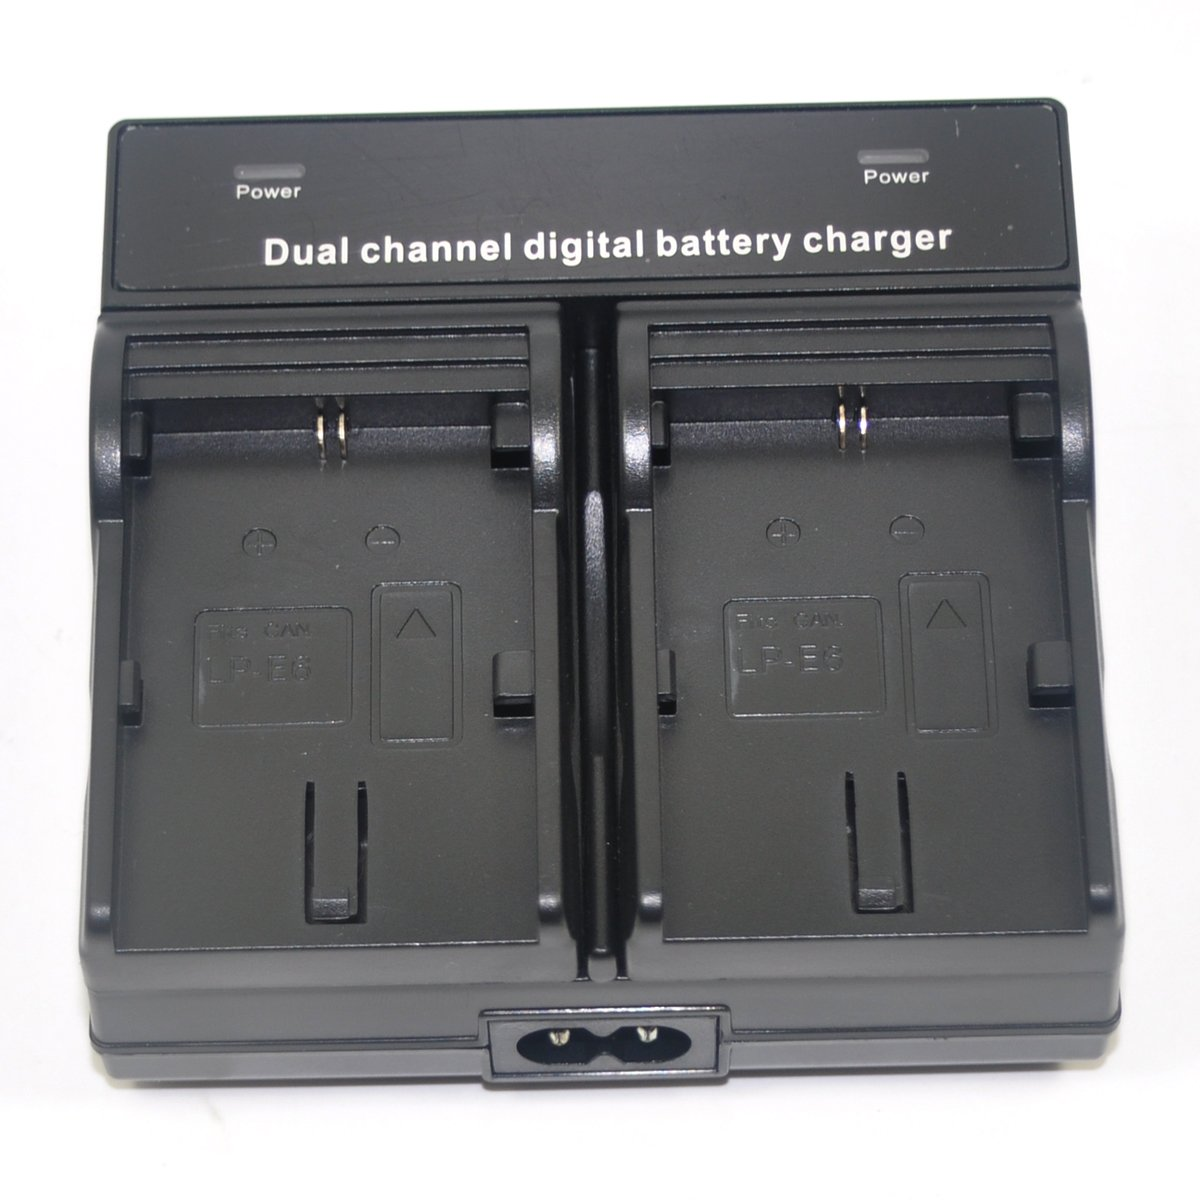 Jiexi Brand New Dual Mains Battery Charger for Canon LP-E6 LP-E6N LC-E6E EOS 5D 6D 7D Mark 2//3//4 EOS 60D 60Da 70D 80D XC10 XC15 Digital Camera Camcorder